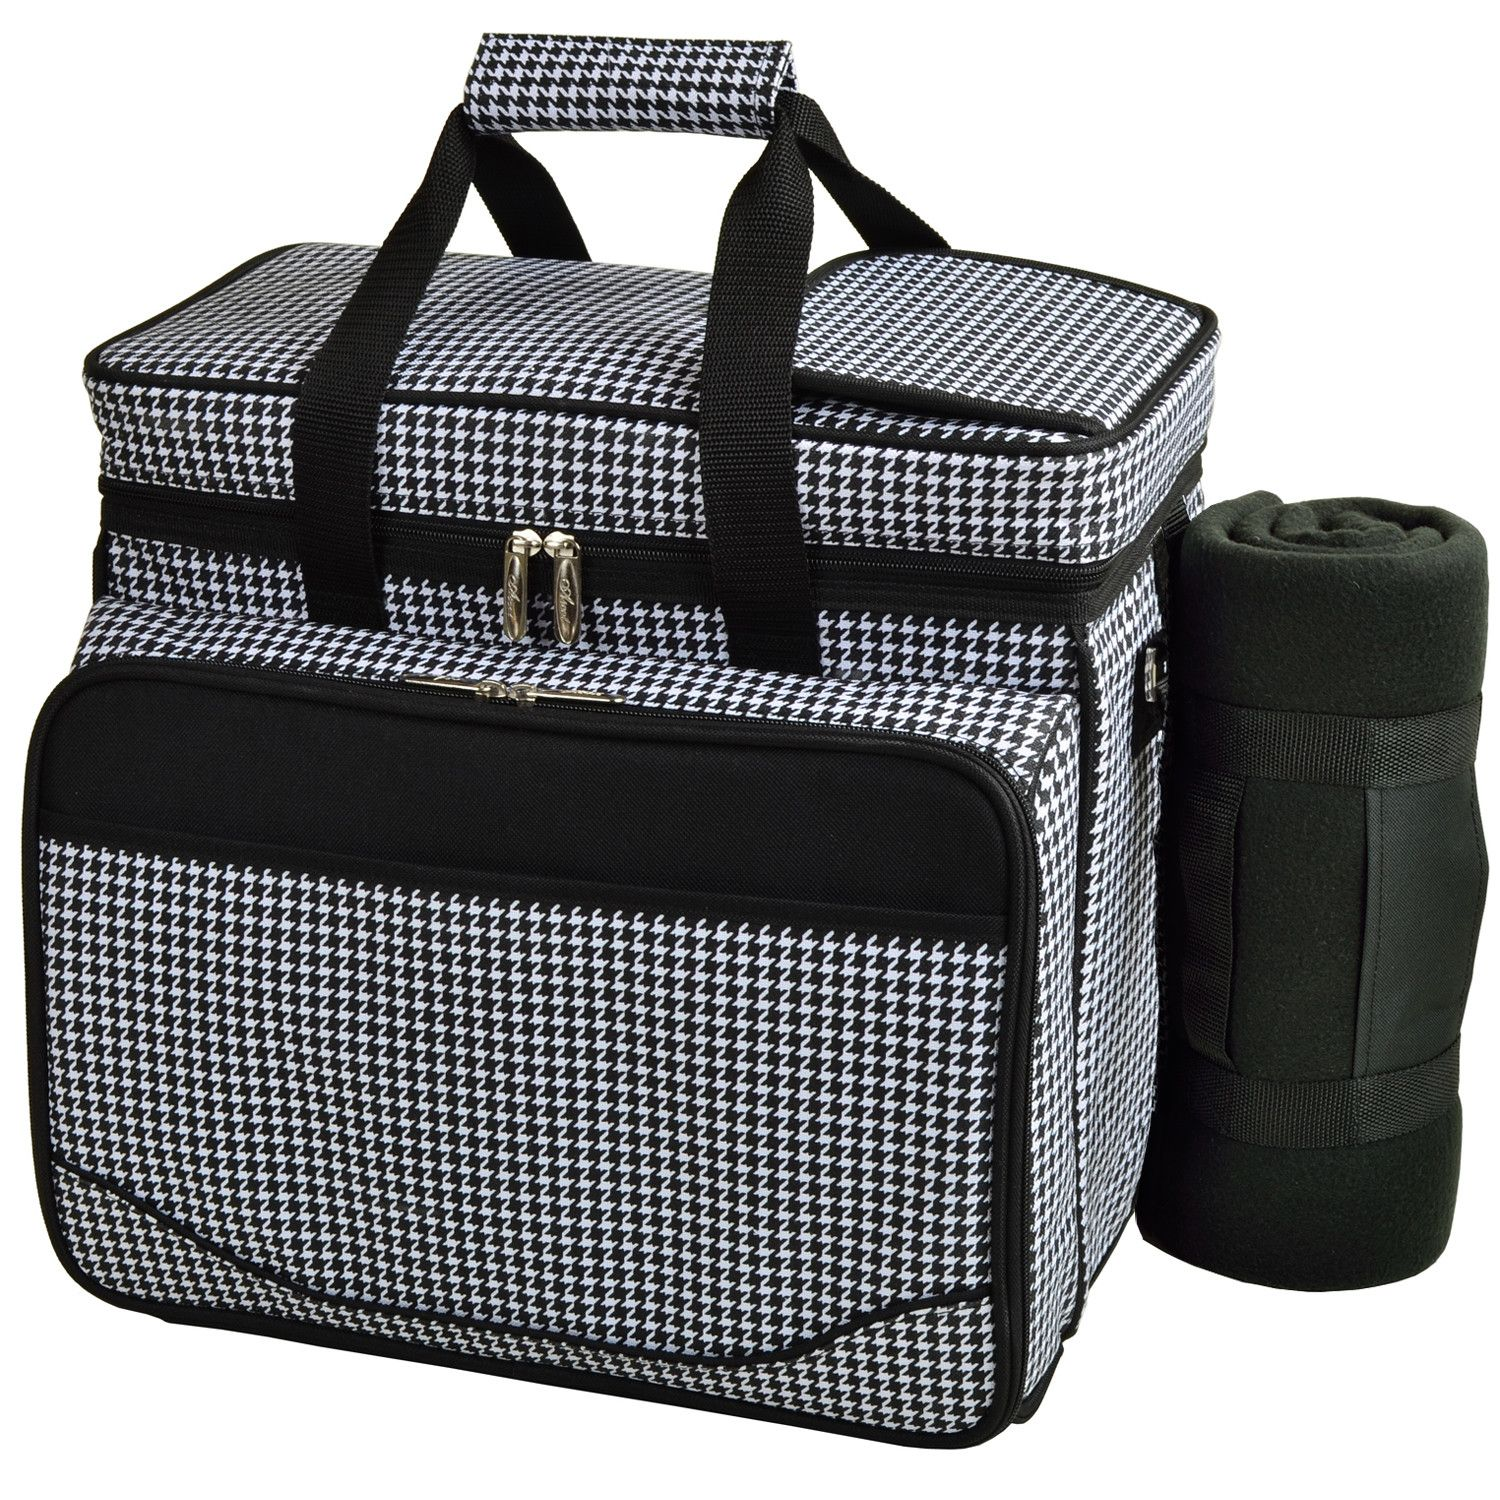 Houndstooth Deluxe Picnic Backpack